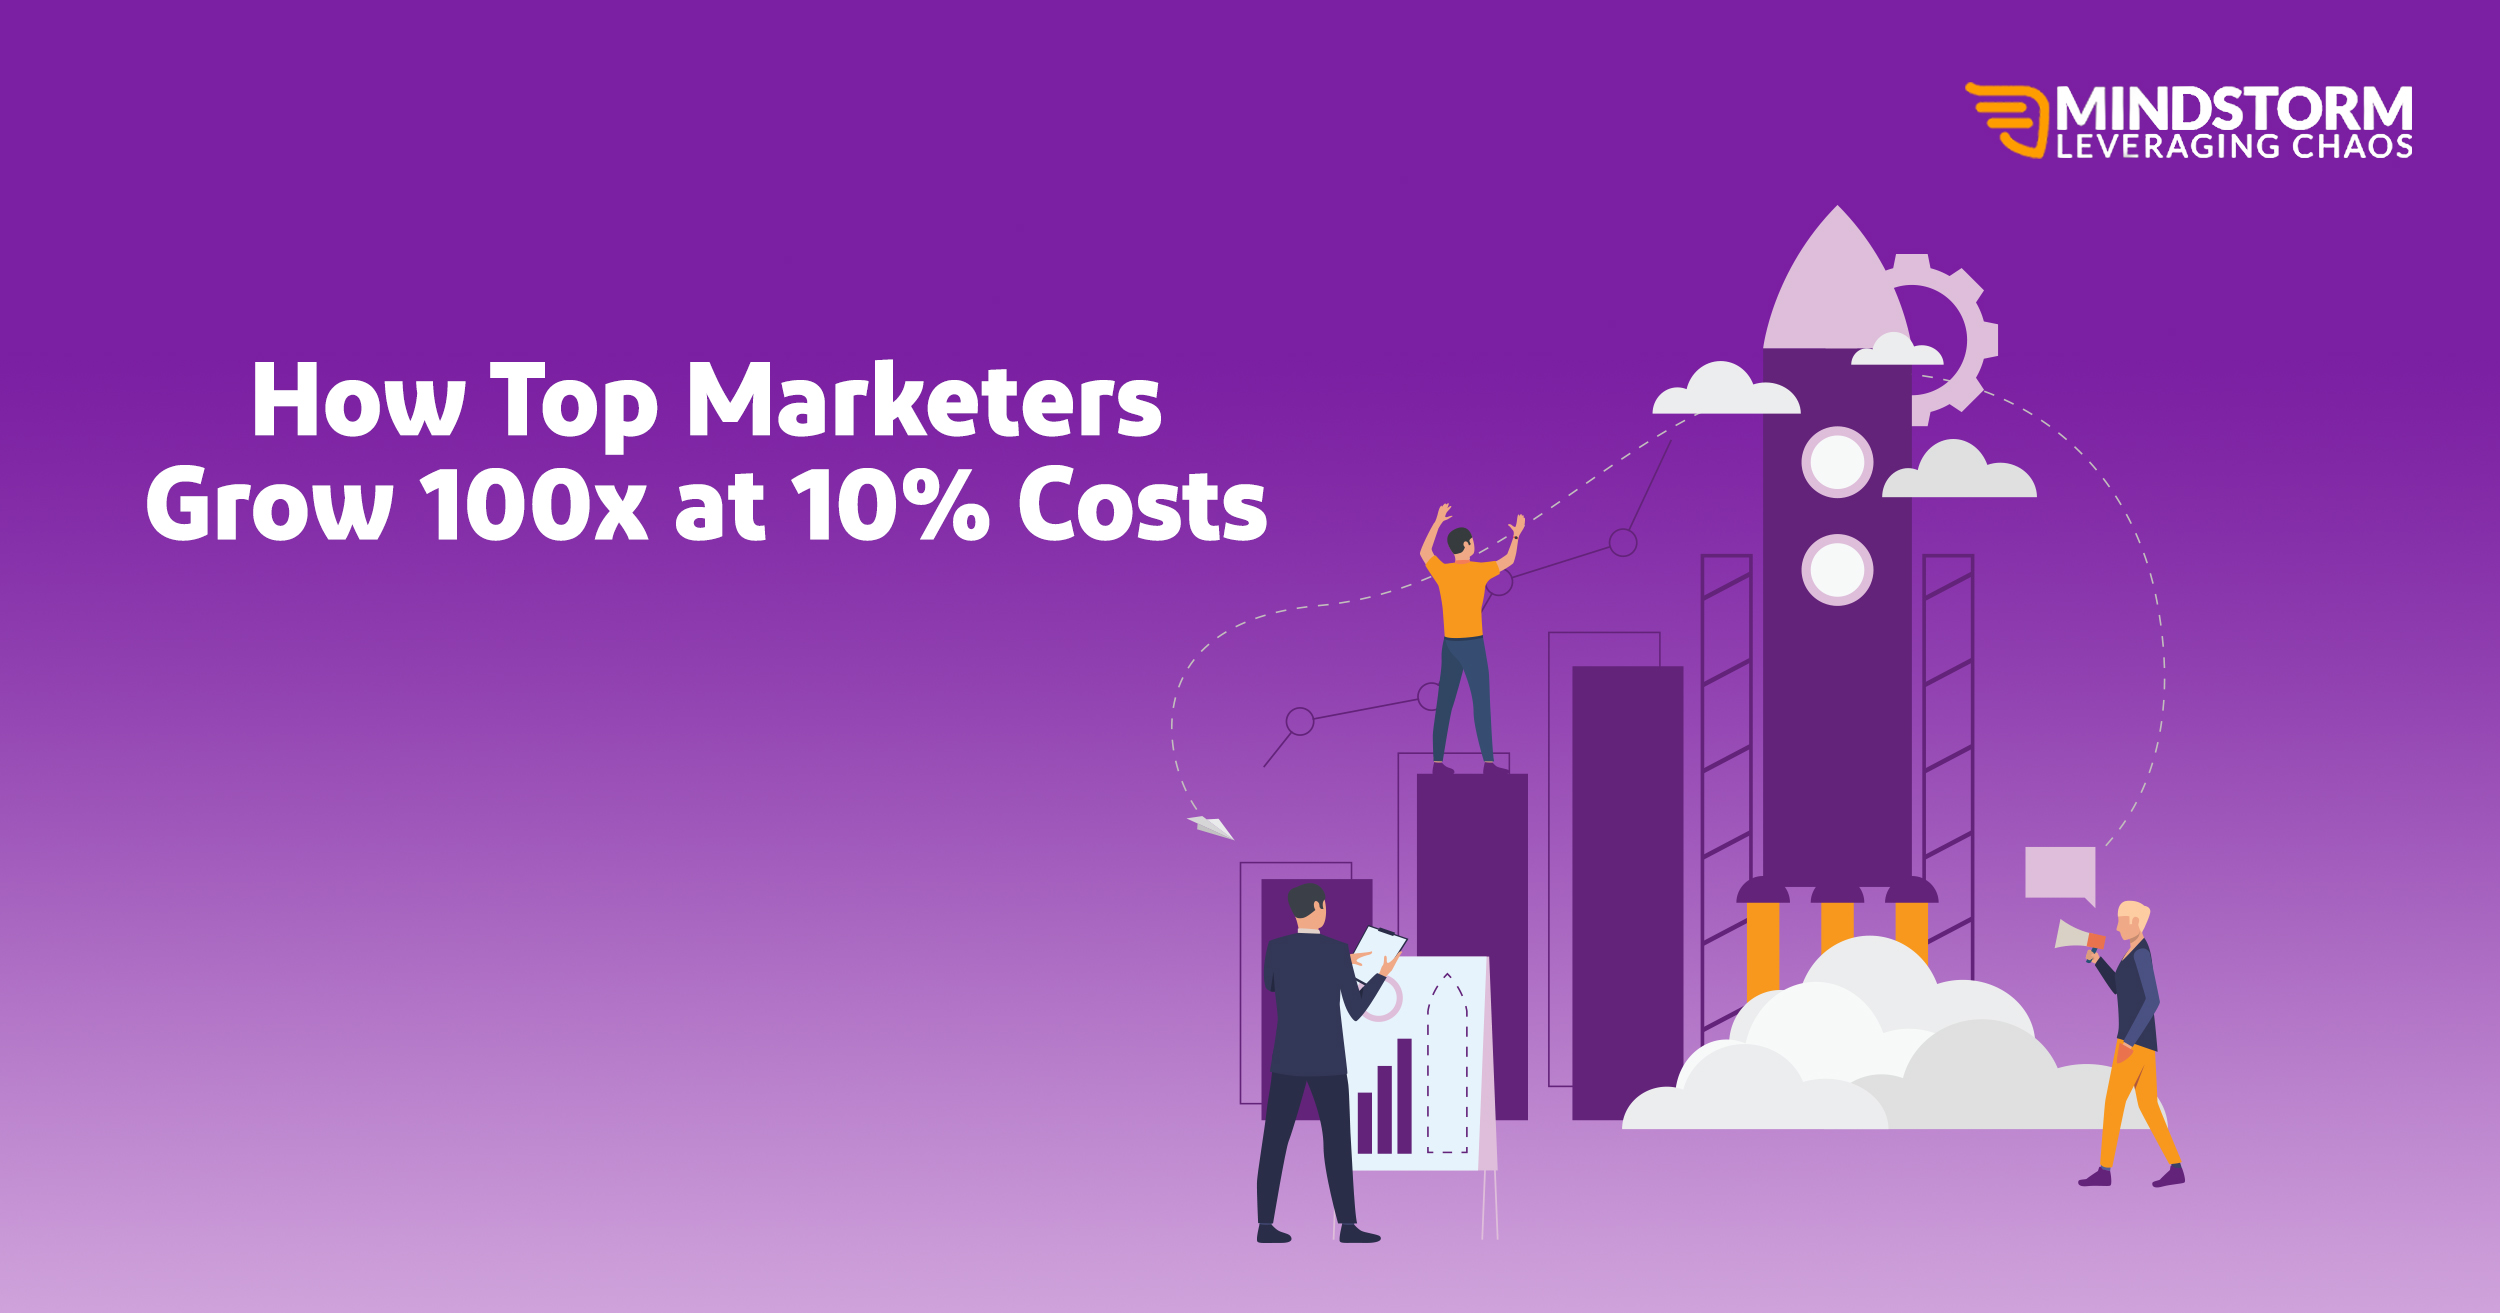 How Top Marketers Grow 100x at 10% Costs!